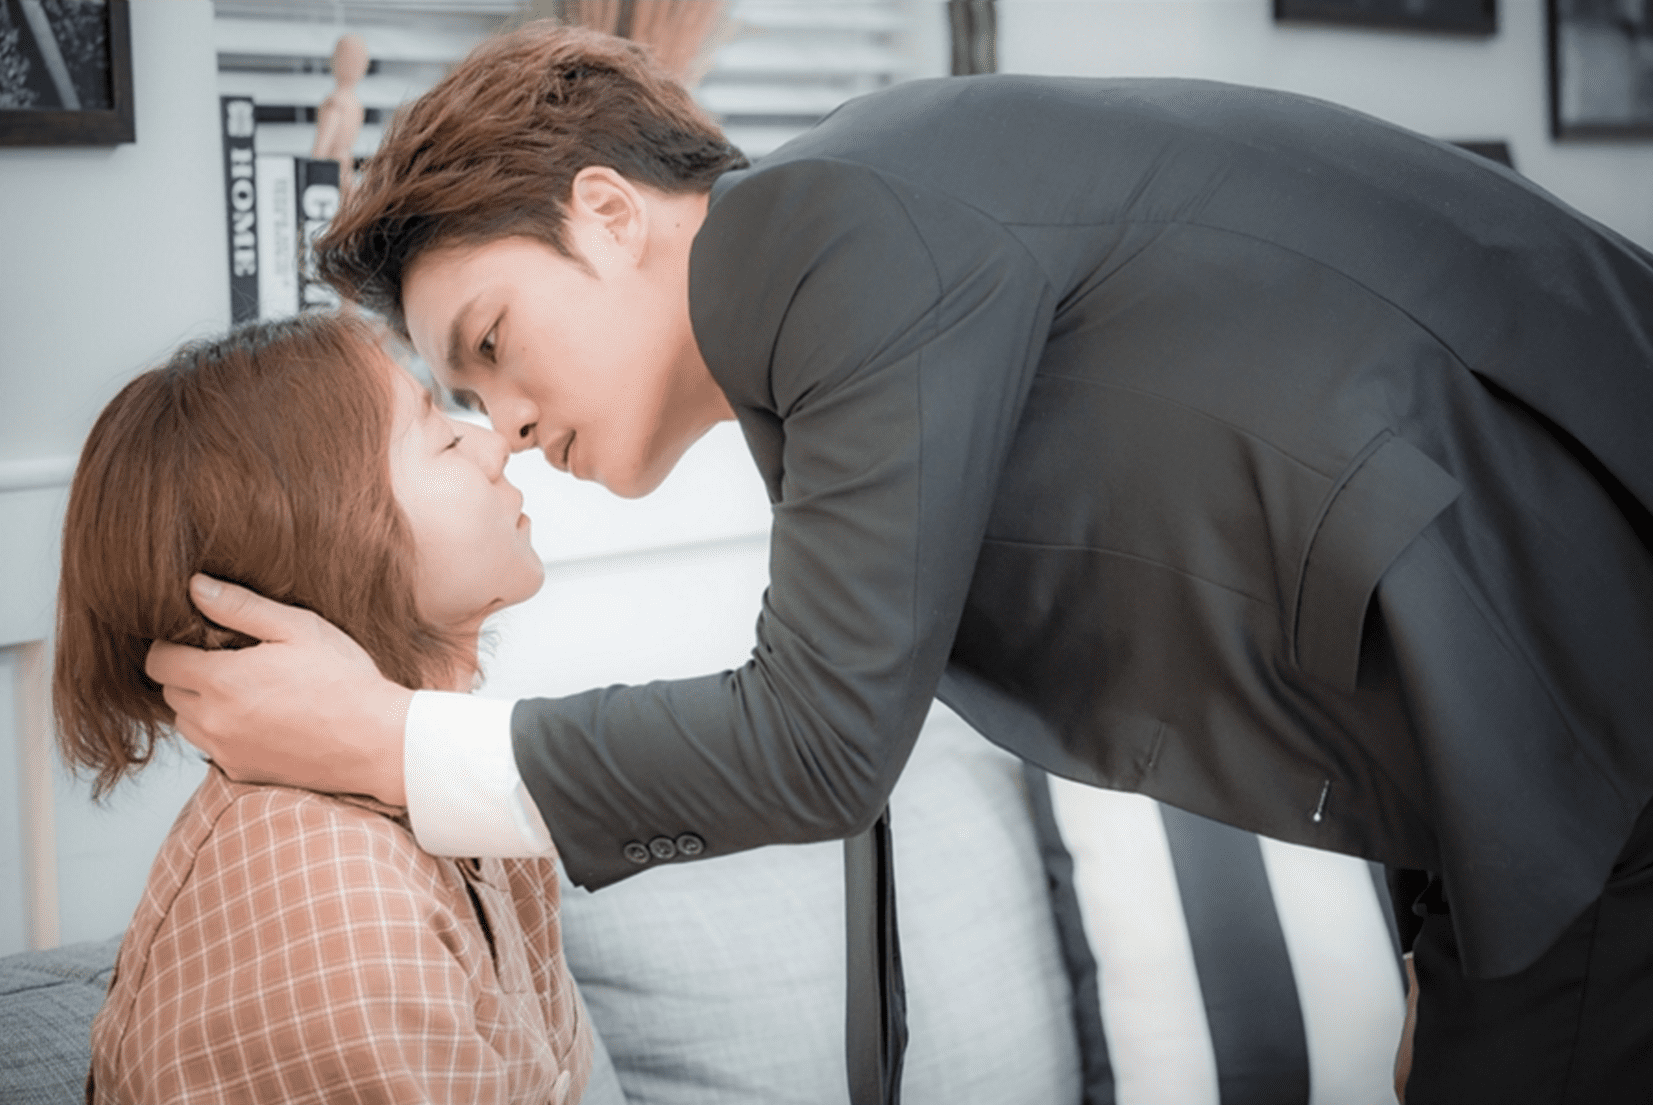 Manhole Teases An Awkward Situation Between UEE, Kim Jaejoong, And Jang Mi Kwan In Stills